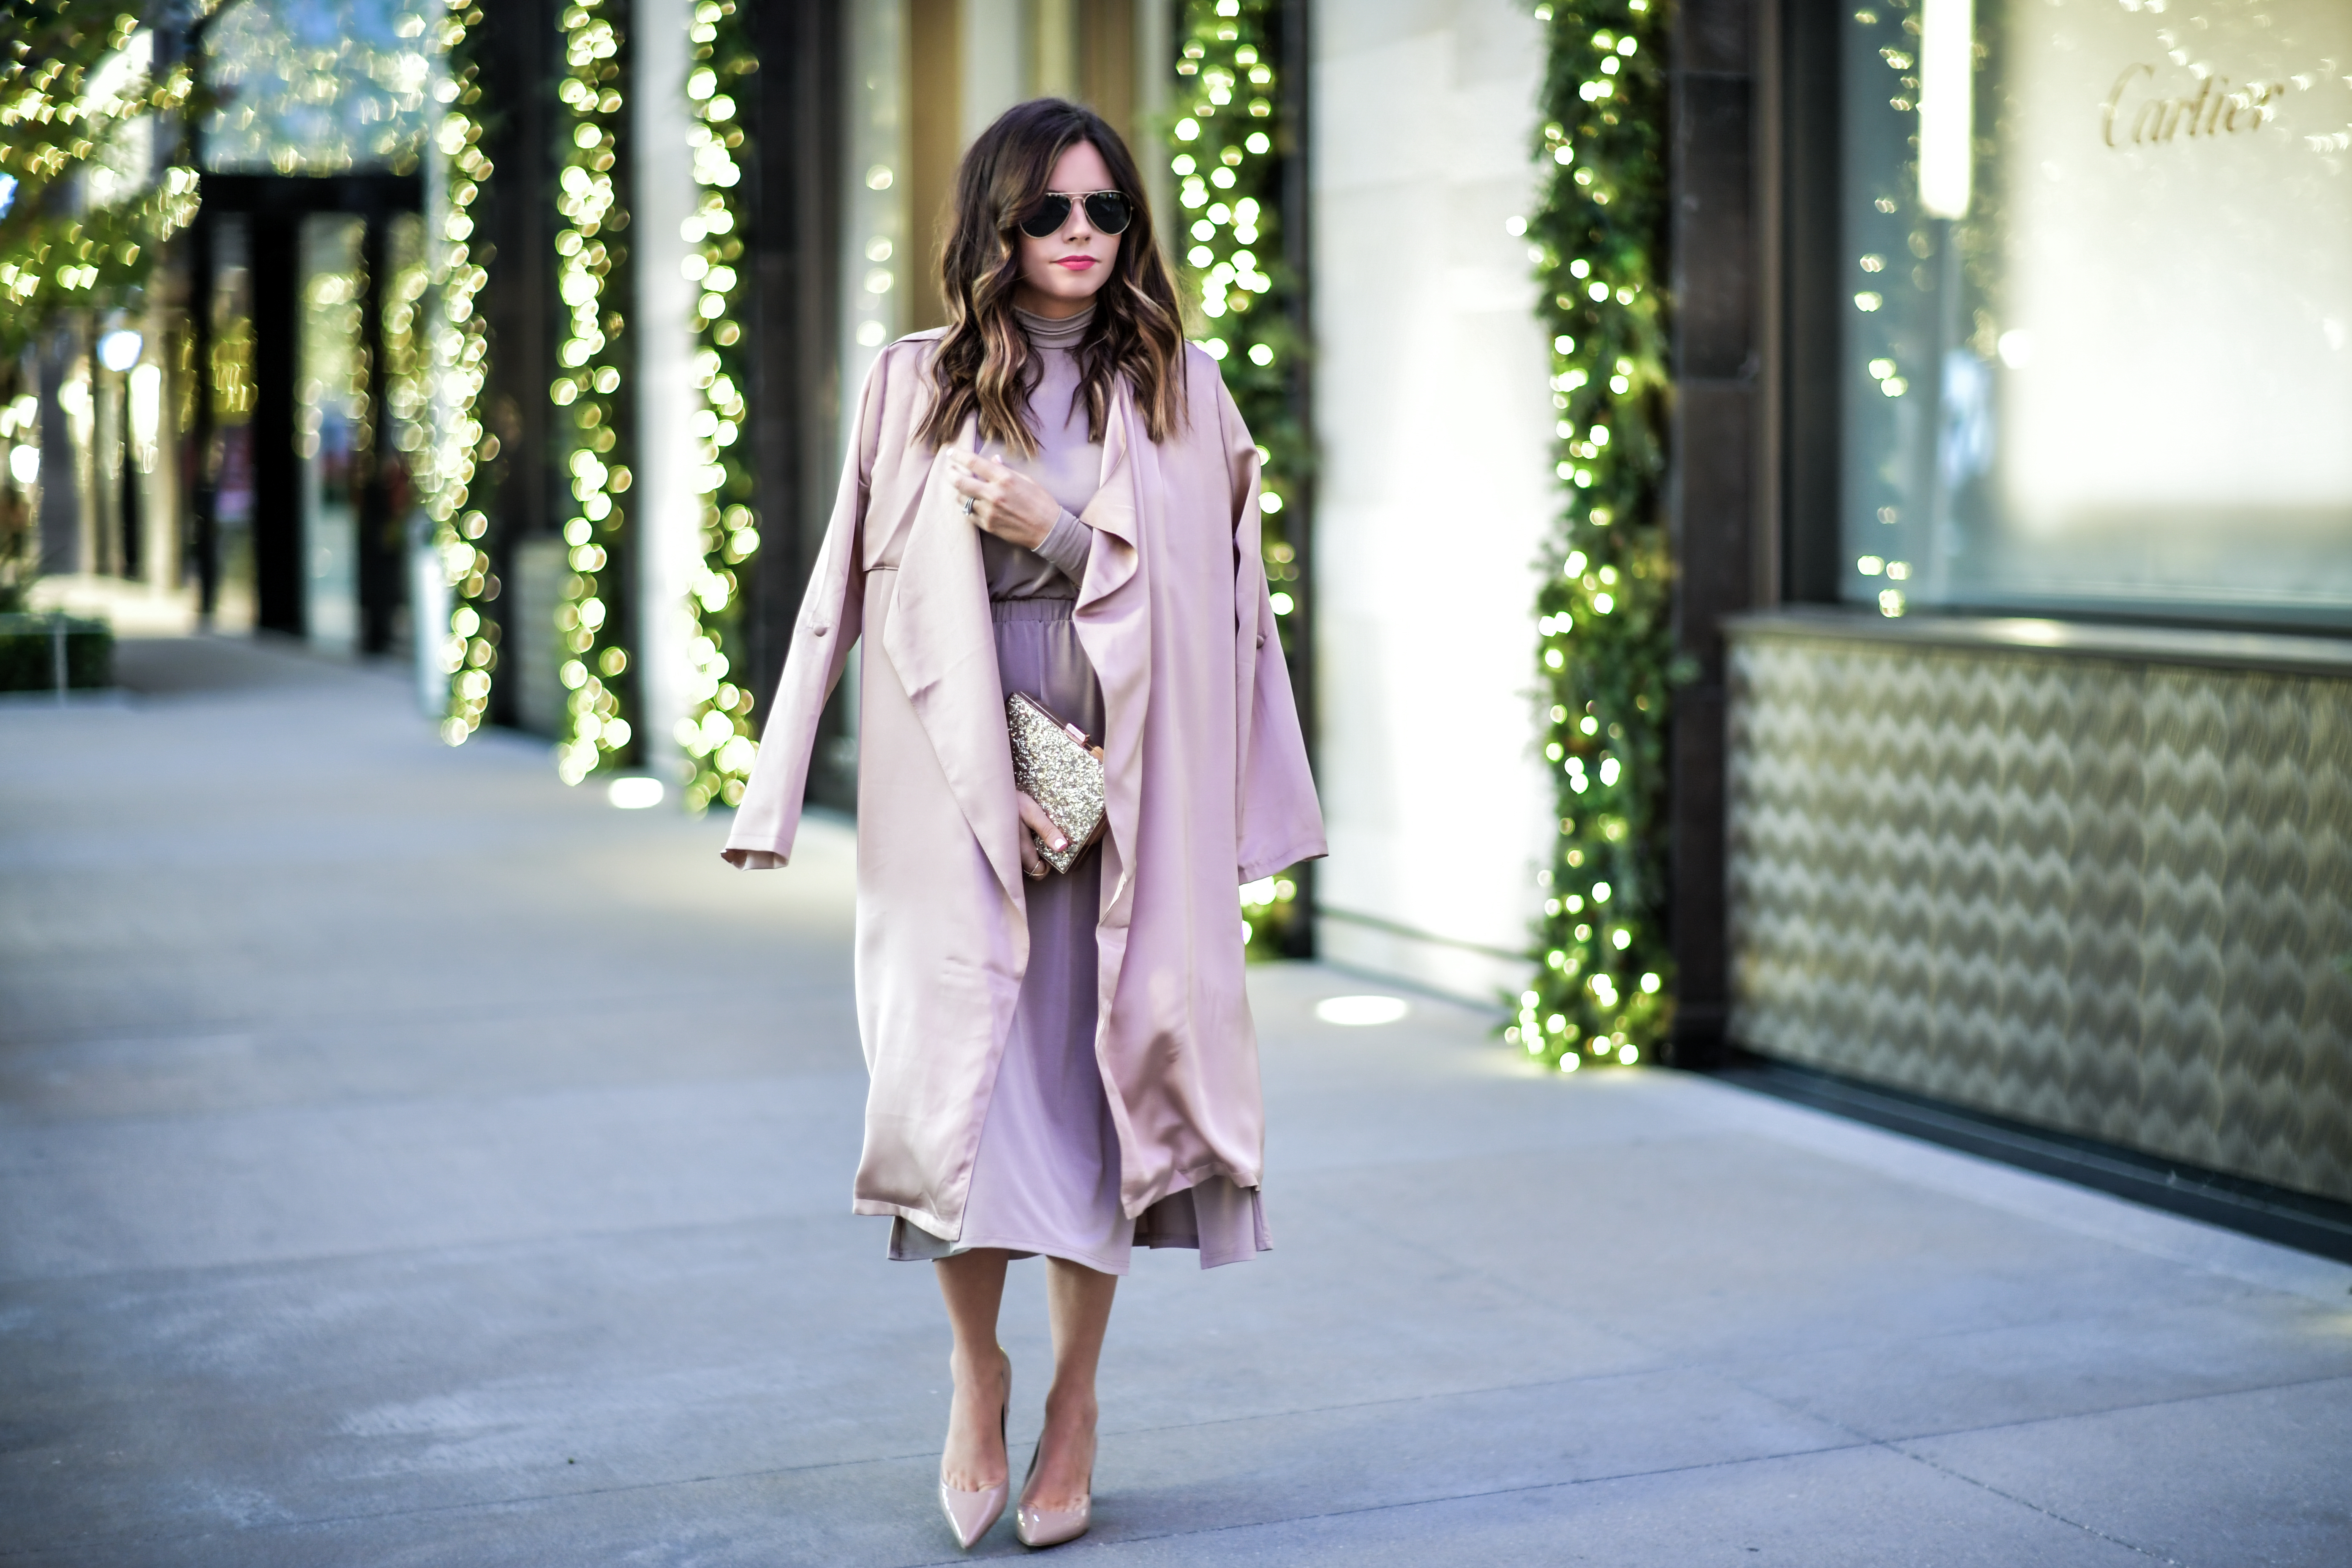 Fashion blogger Tiffany Jais of Flaunt and Center is wearing a cutout dress by ASOS and a sparkle clutch for a chic Holiday look